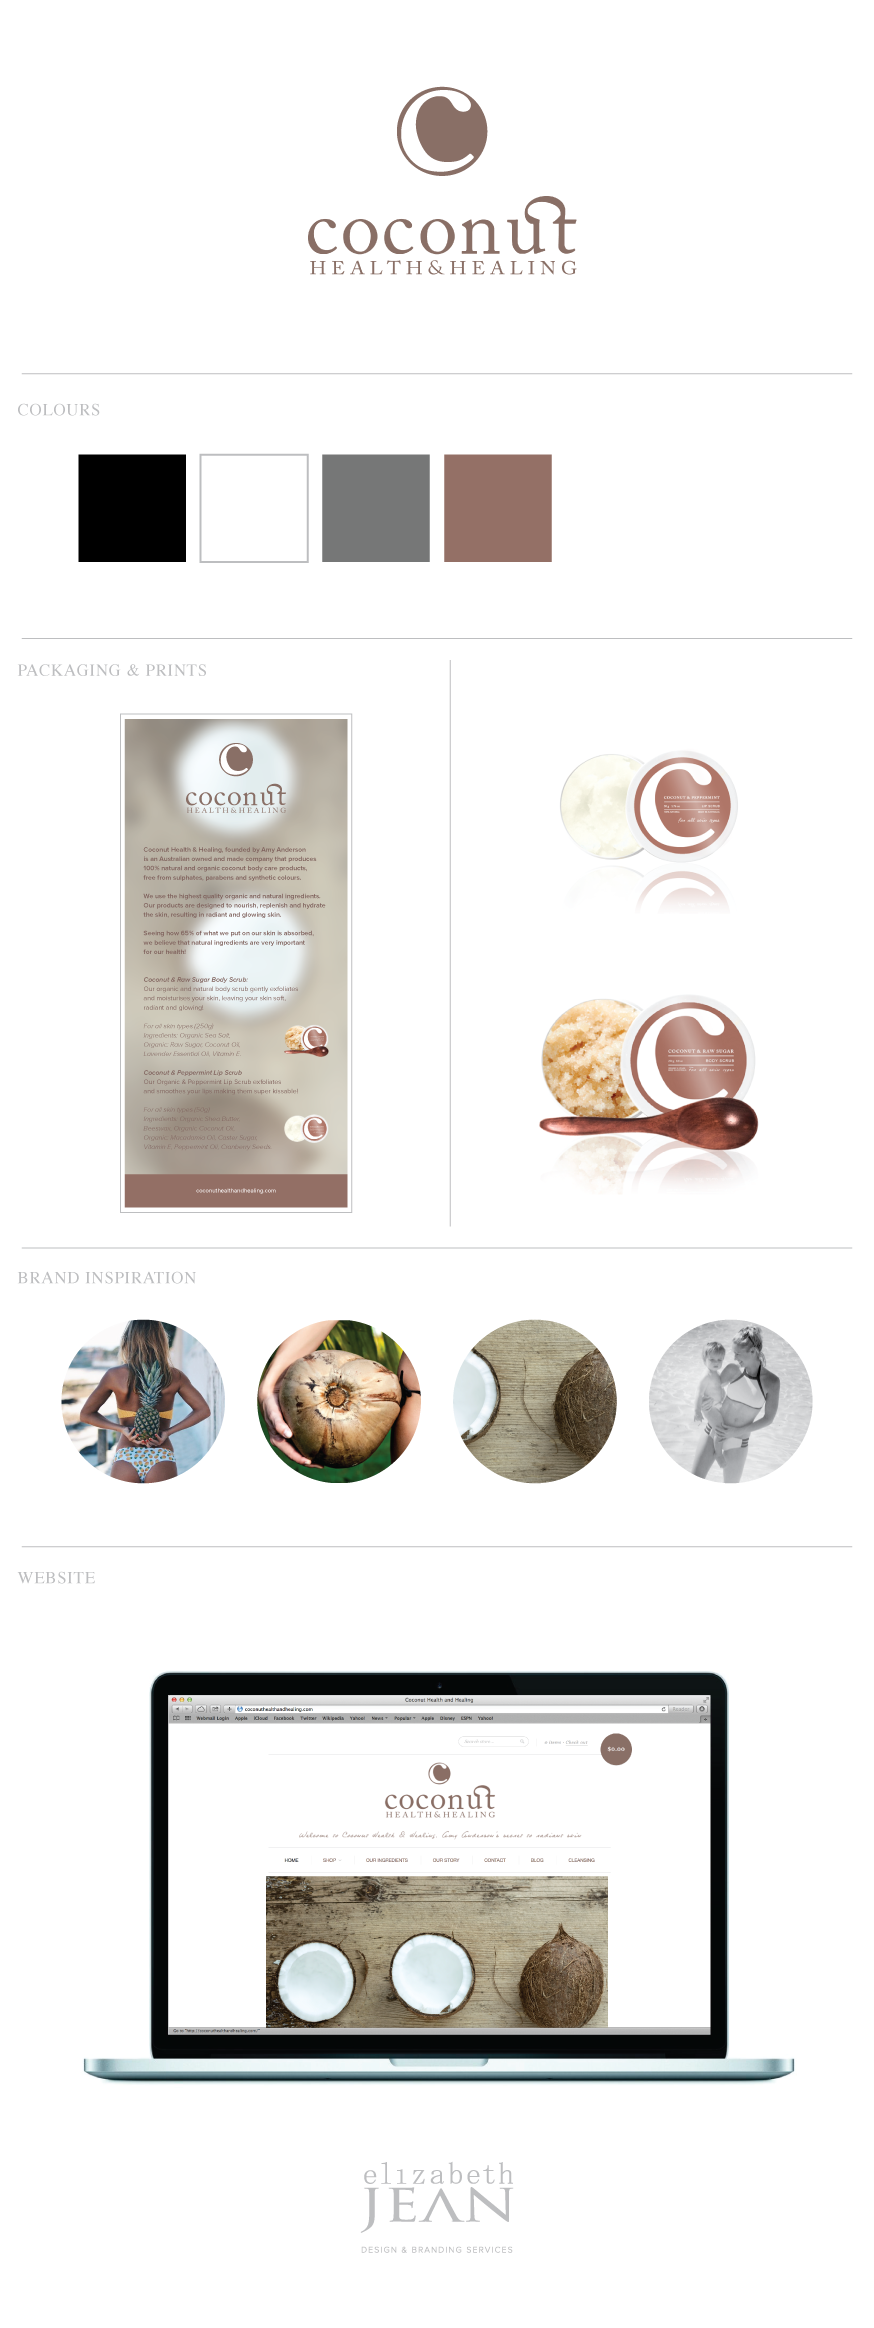 Coconut Health & Healing Brand Identity, Packaging